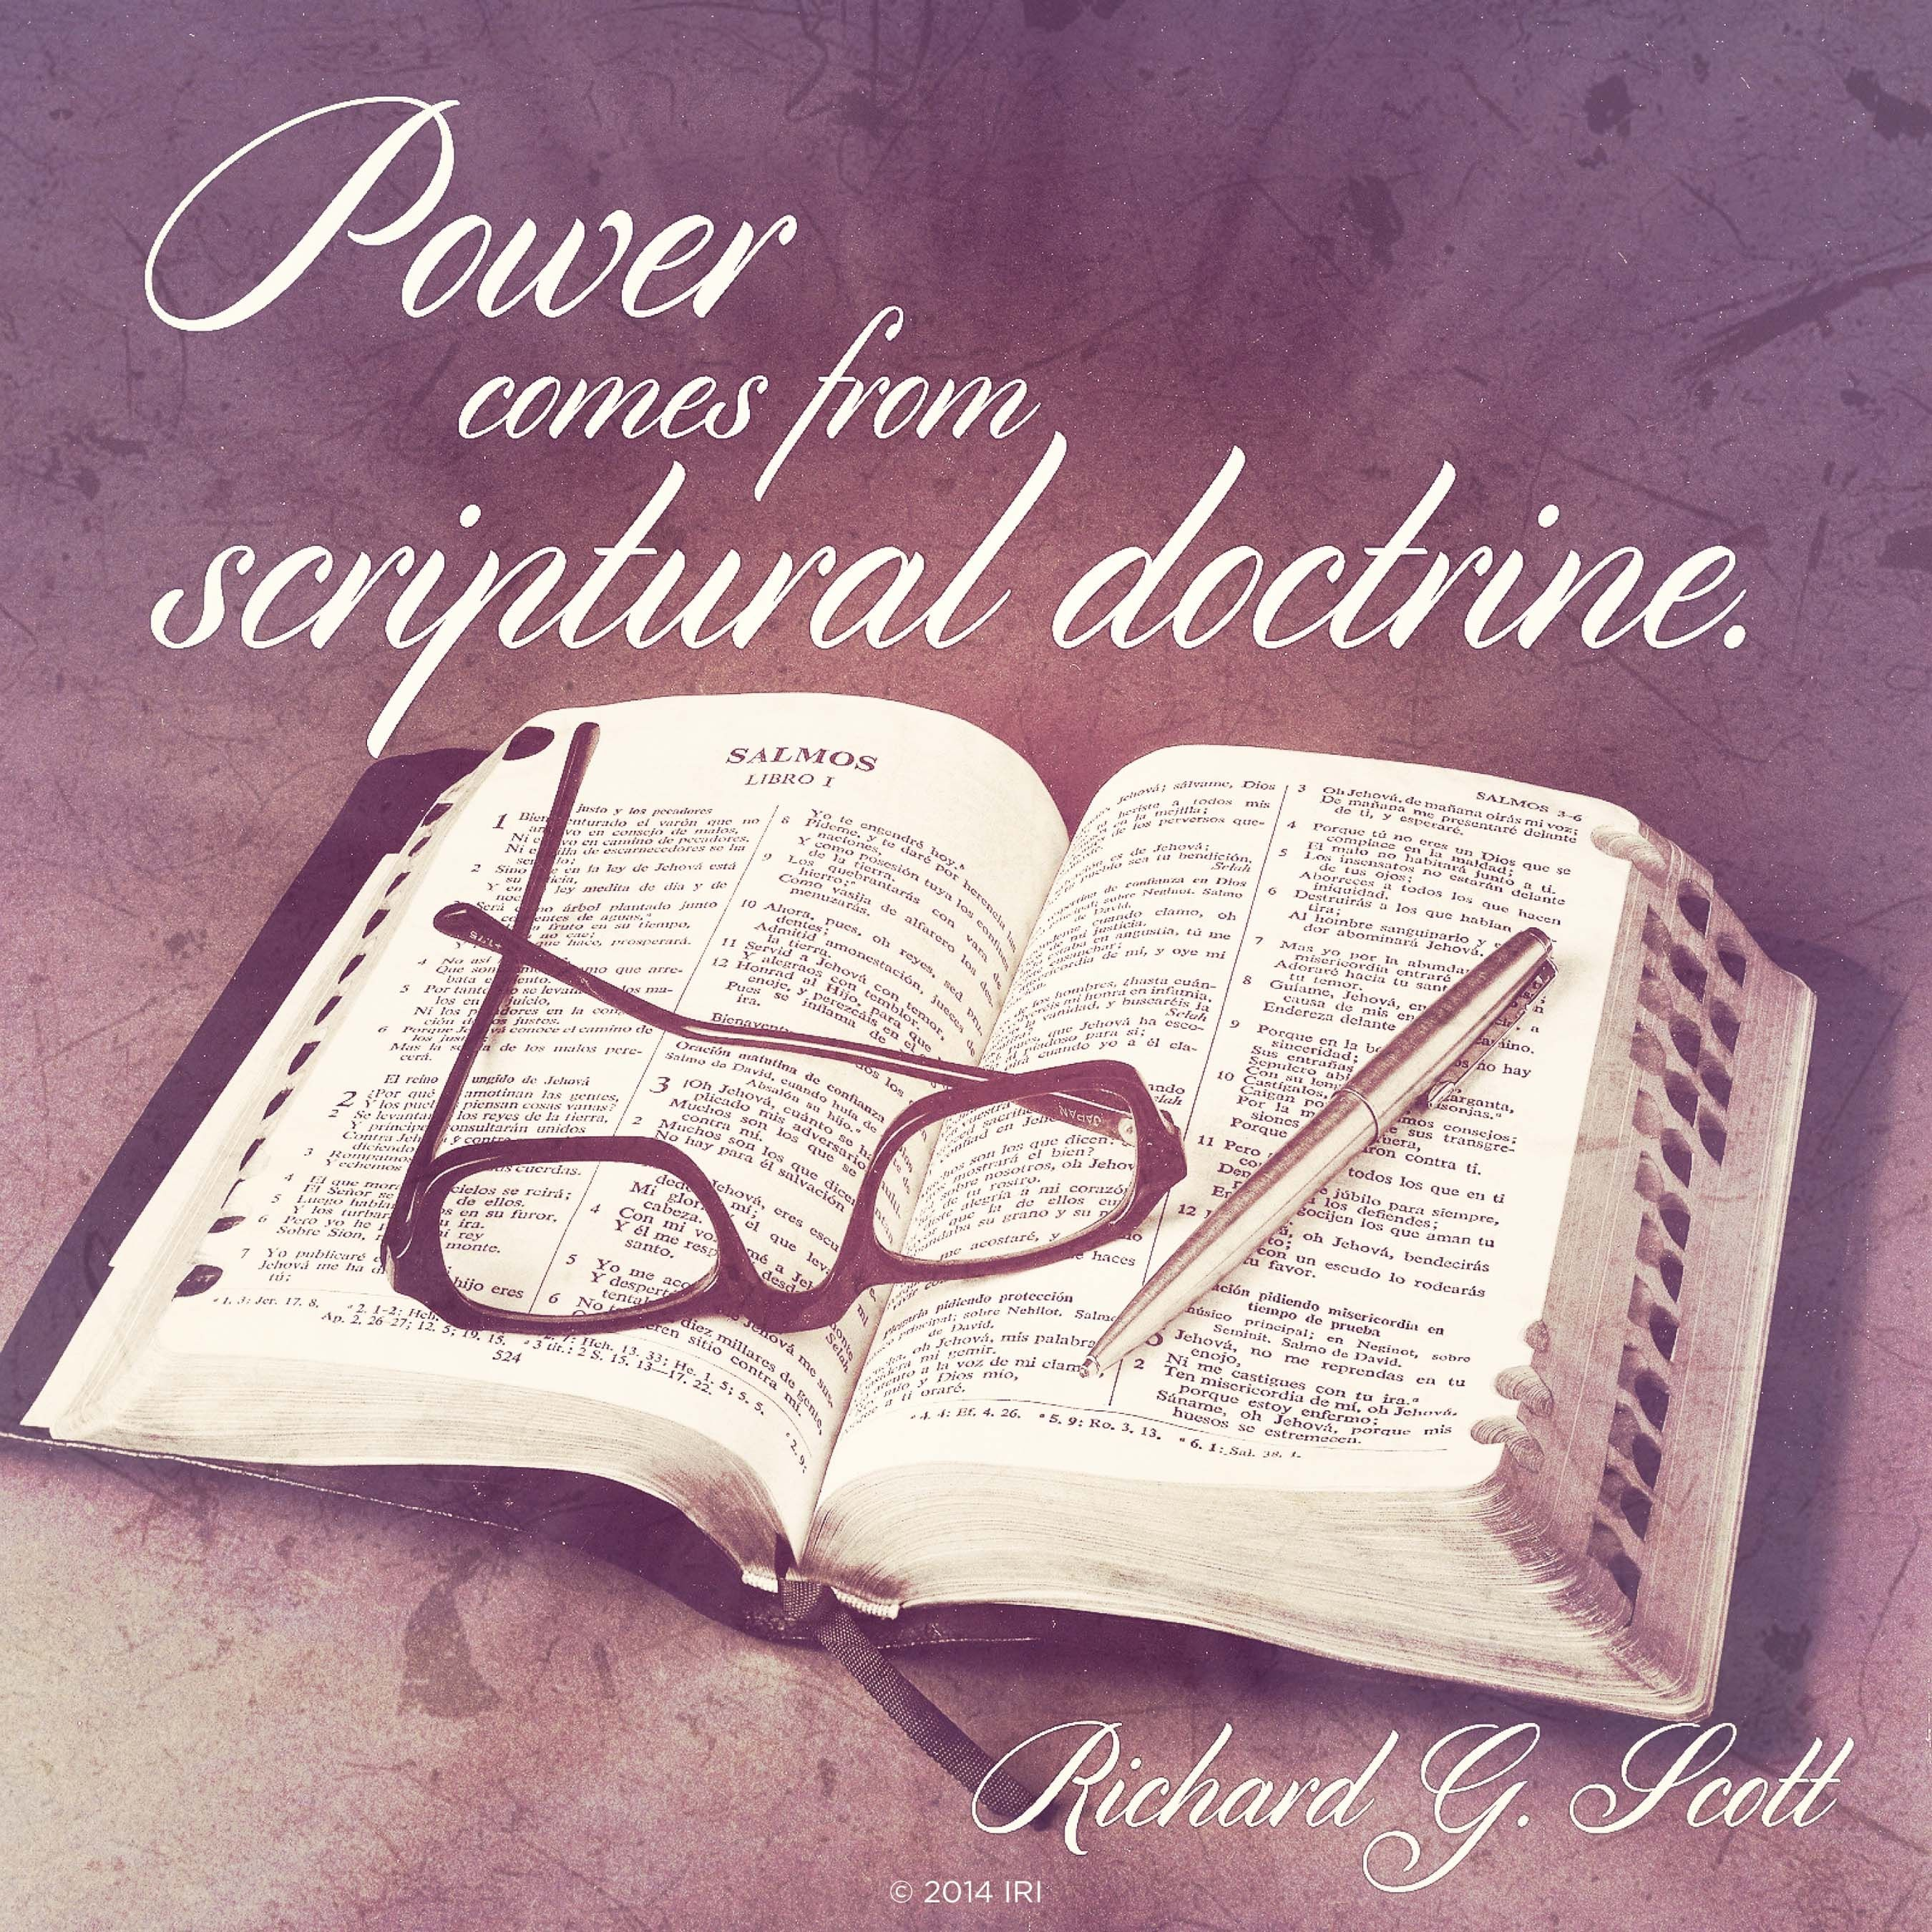 "An image of the scriptures coupled with a quote by Elder Richard G. Scott: ""Power comes from scriptural doctrine."""